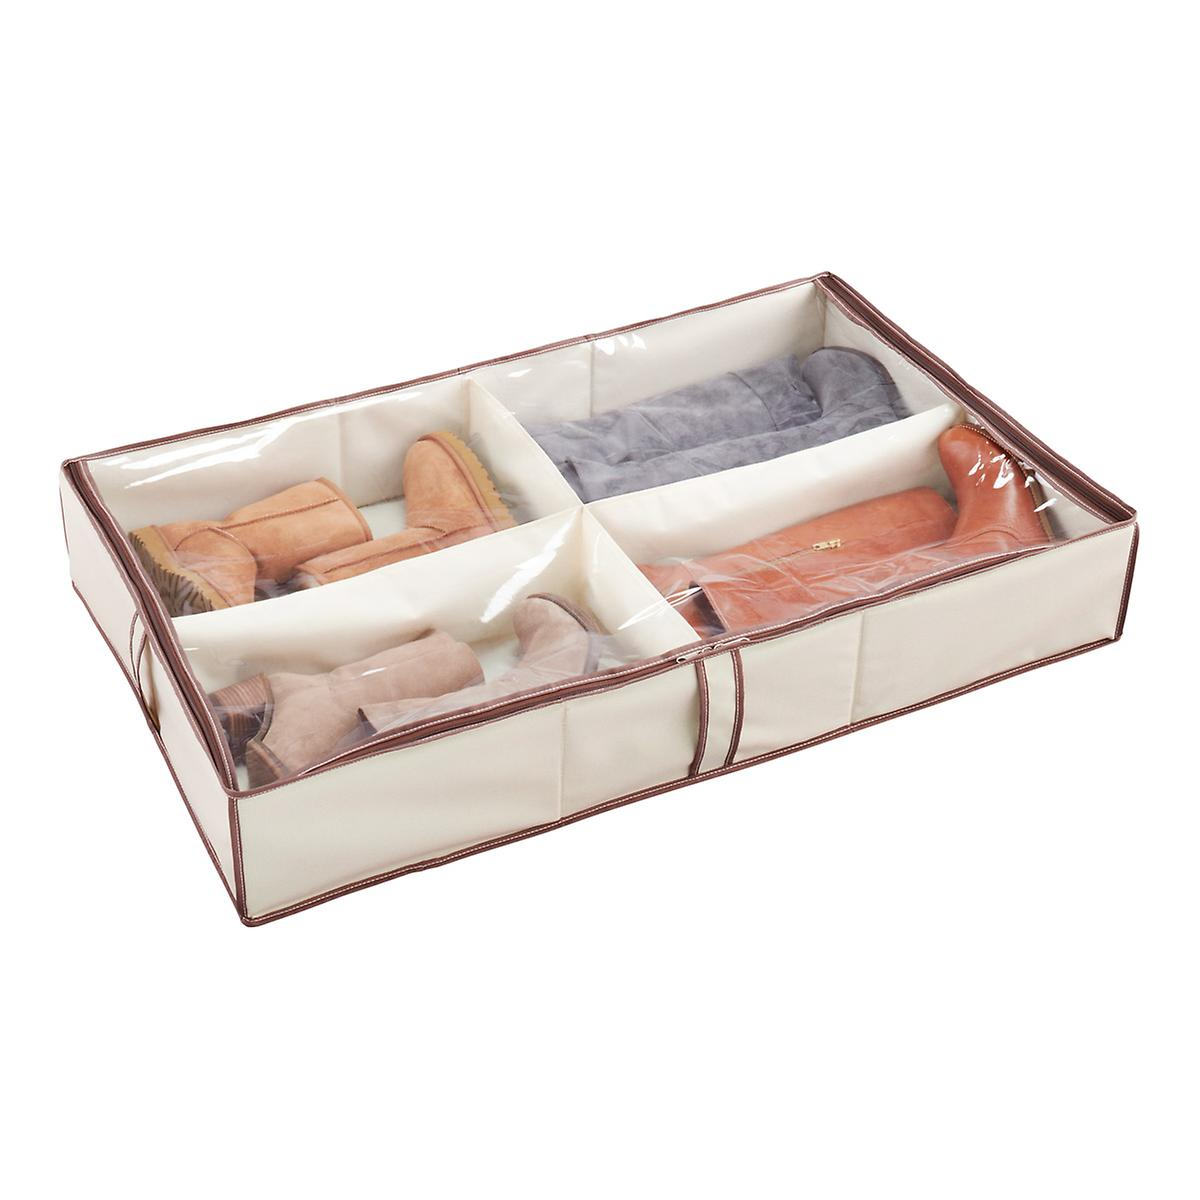 4 Compartment Under Bed Shoe Organizer The Container Store